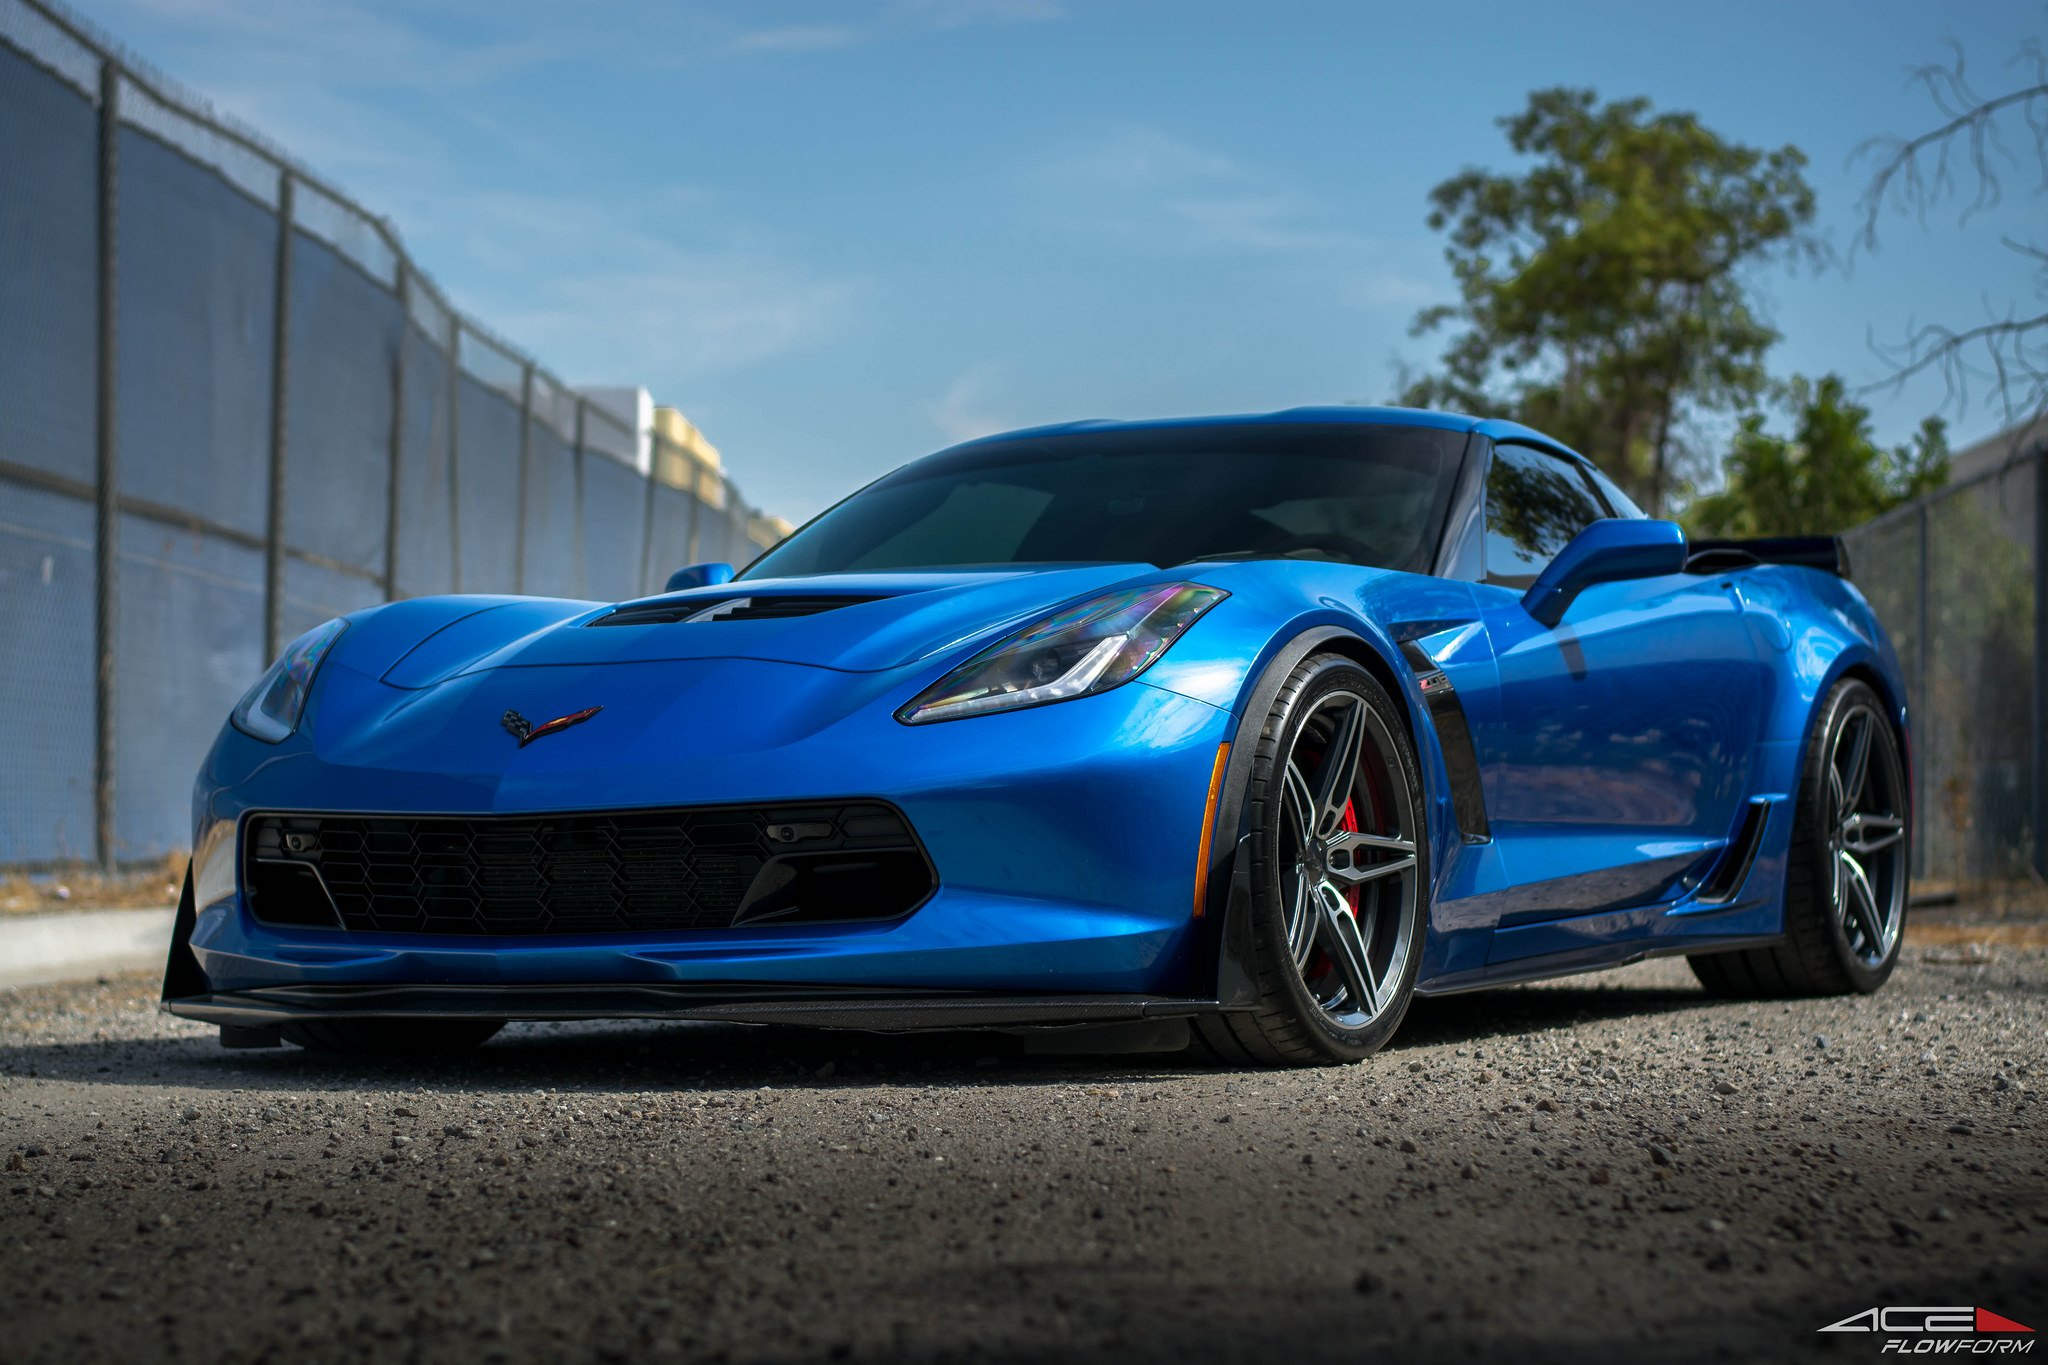 Blue Chevy Corvette With Custom Vented Hood Photo By Ace Alloy